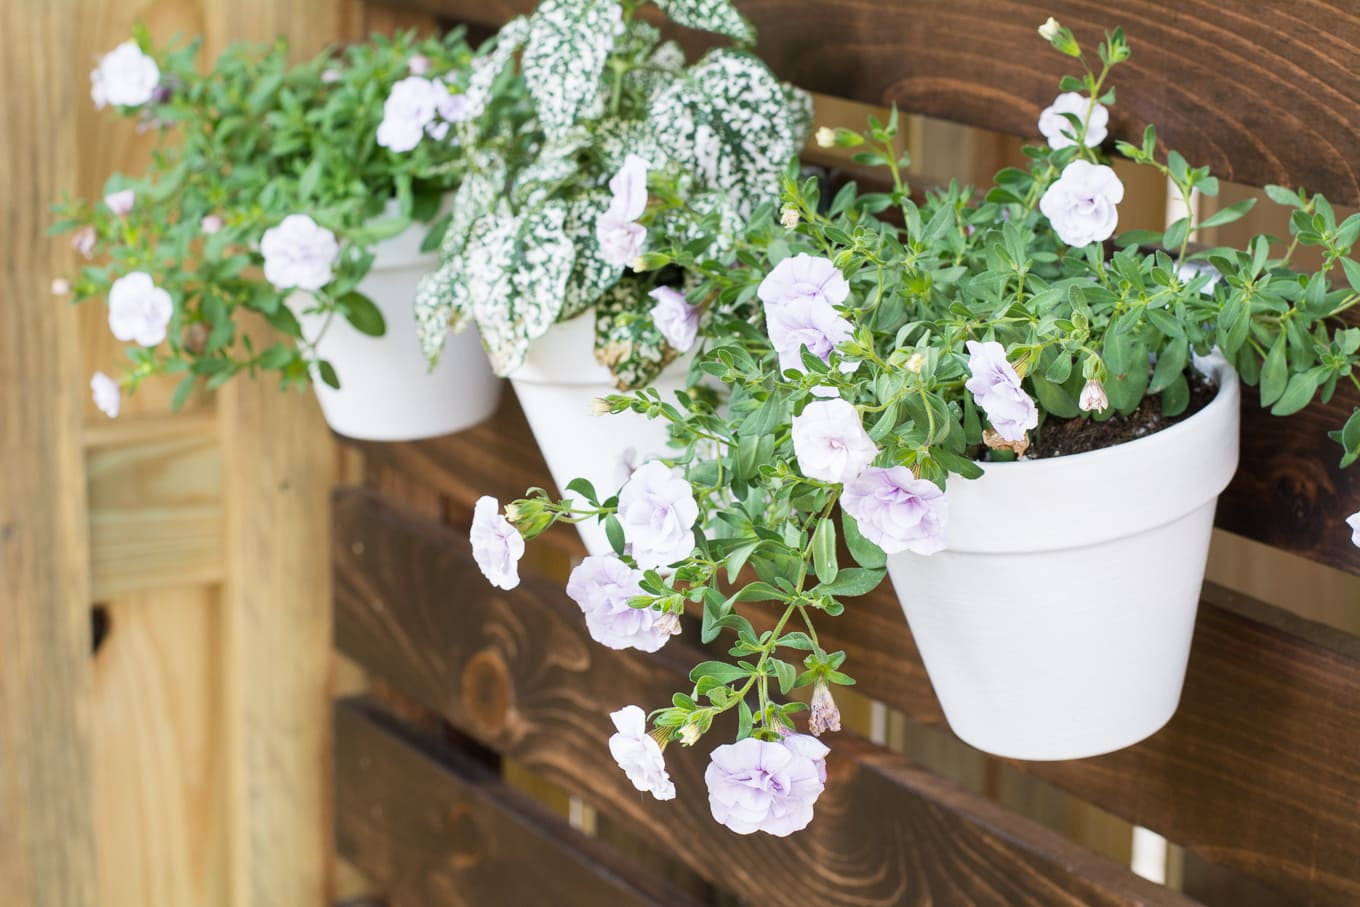 flowers hanging on a fence using pot clips